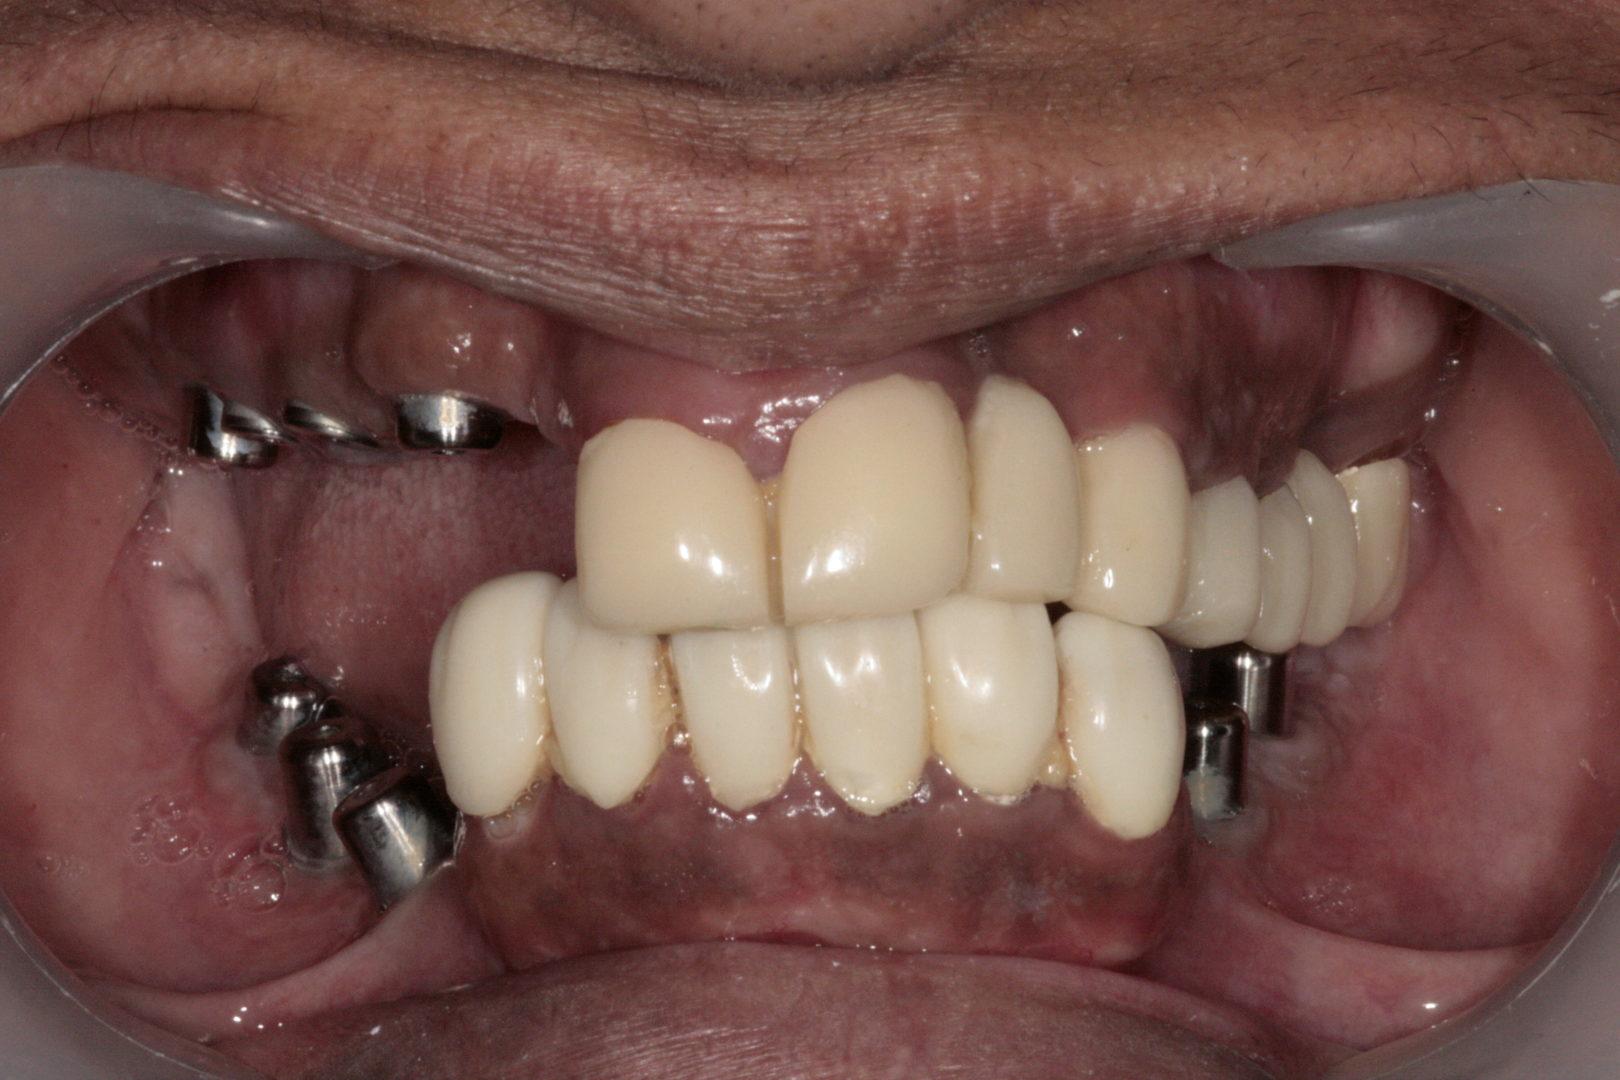 Implants Bridge - Dr-Smilez Dental Center - Chennai